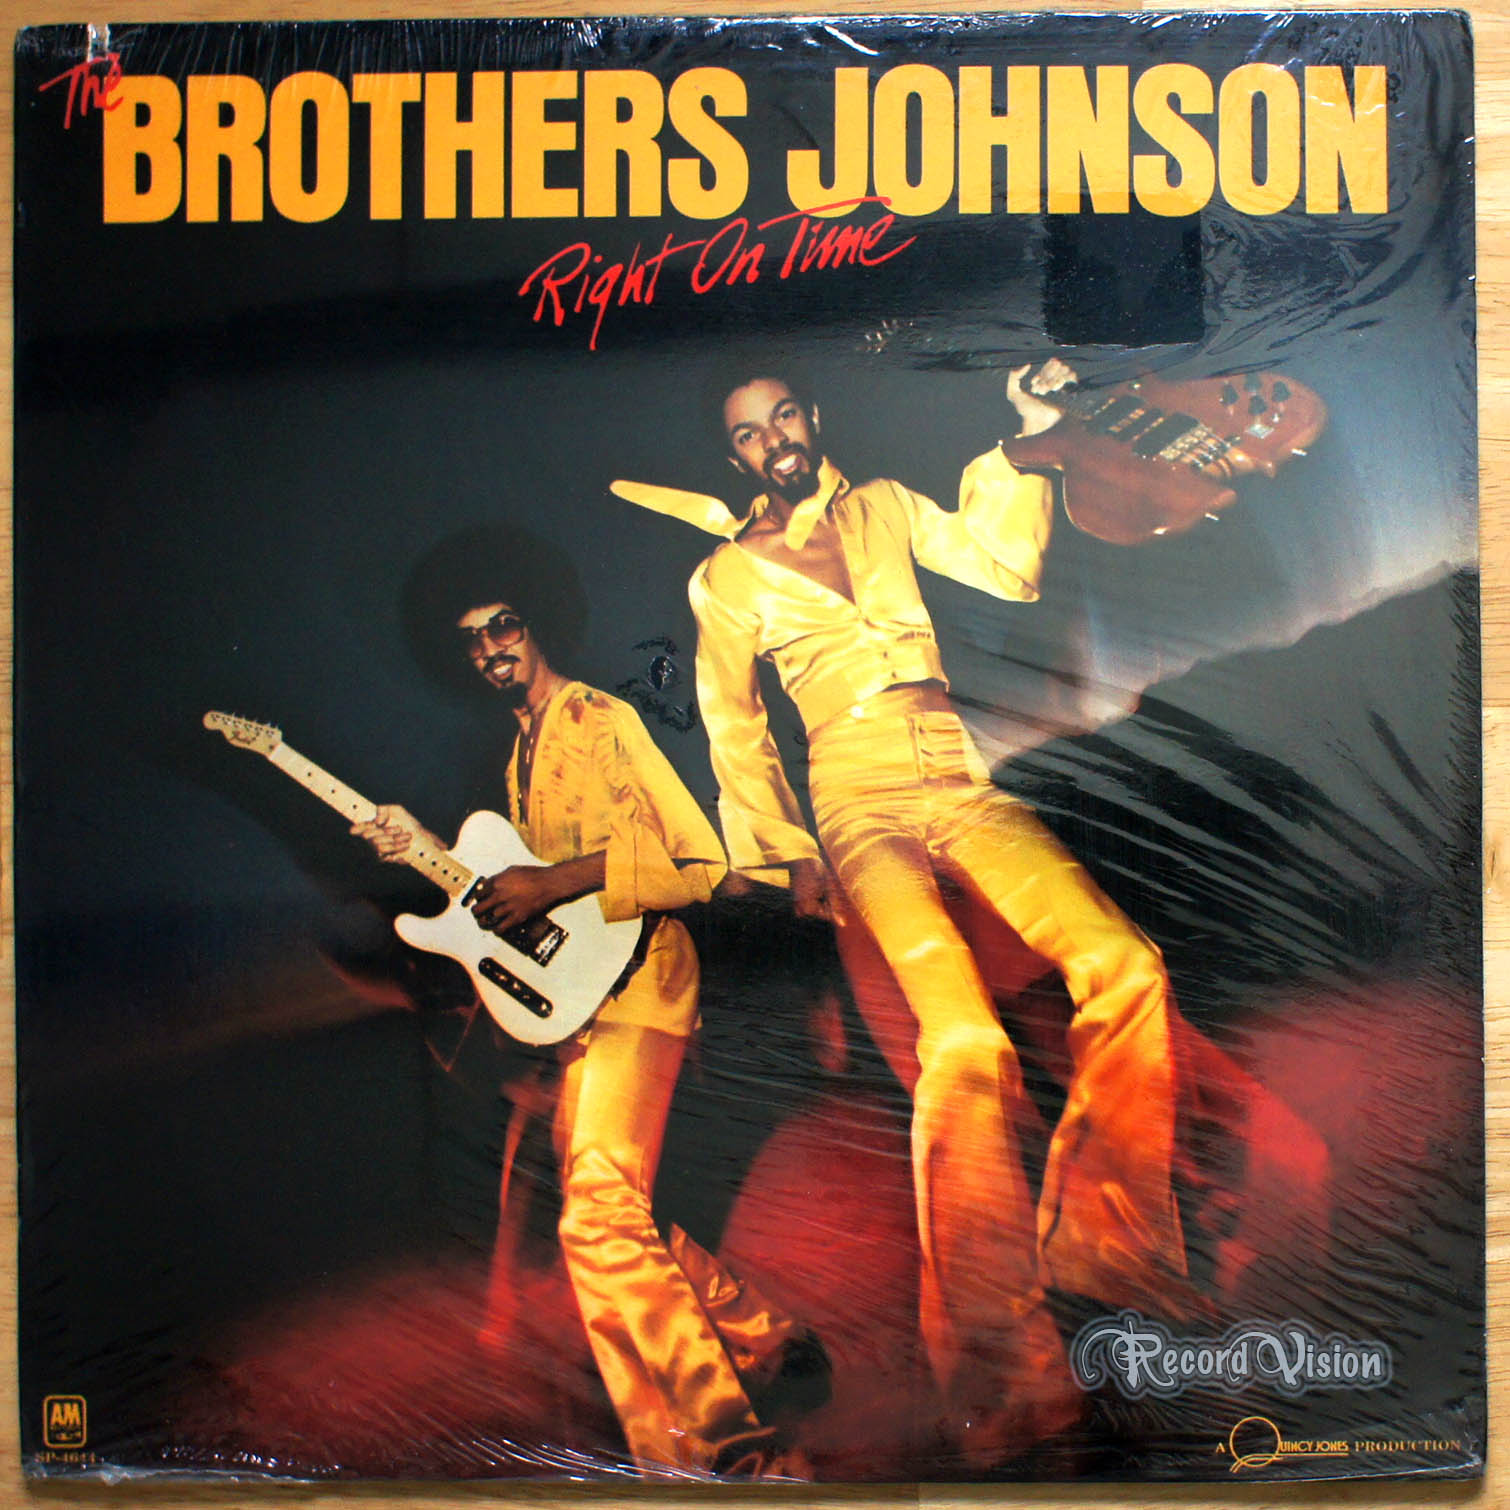 BROTHERS JOHNSON - Right on Time - 33T